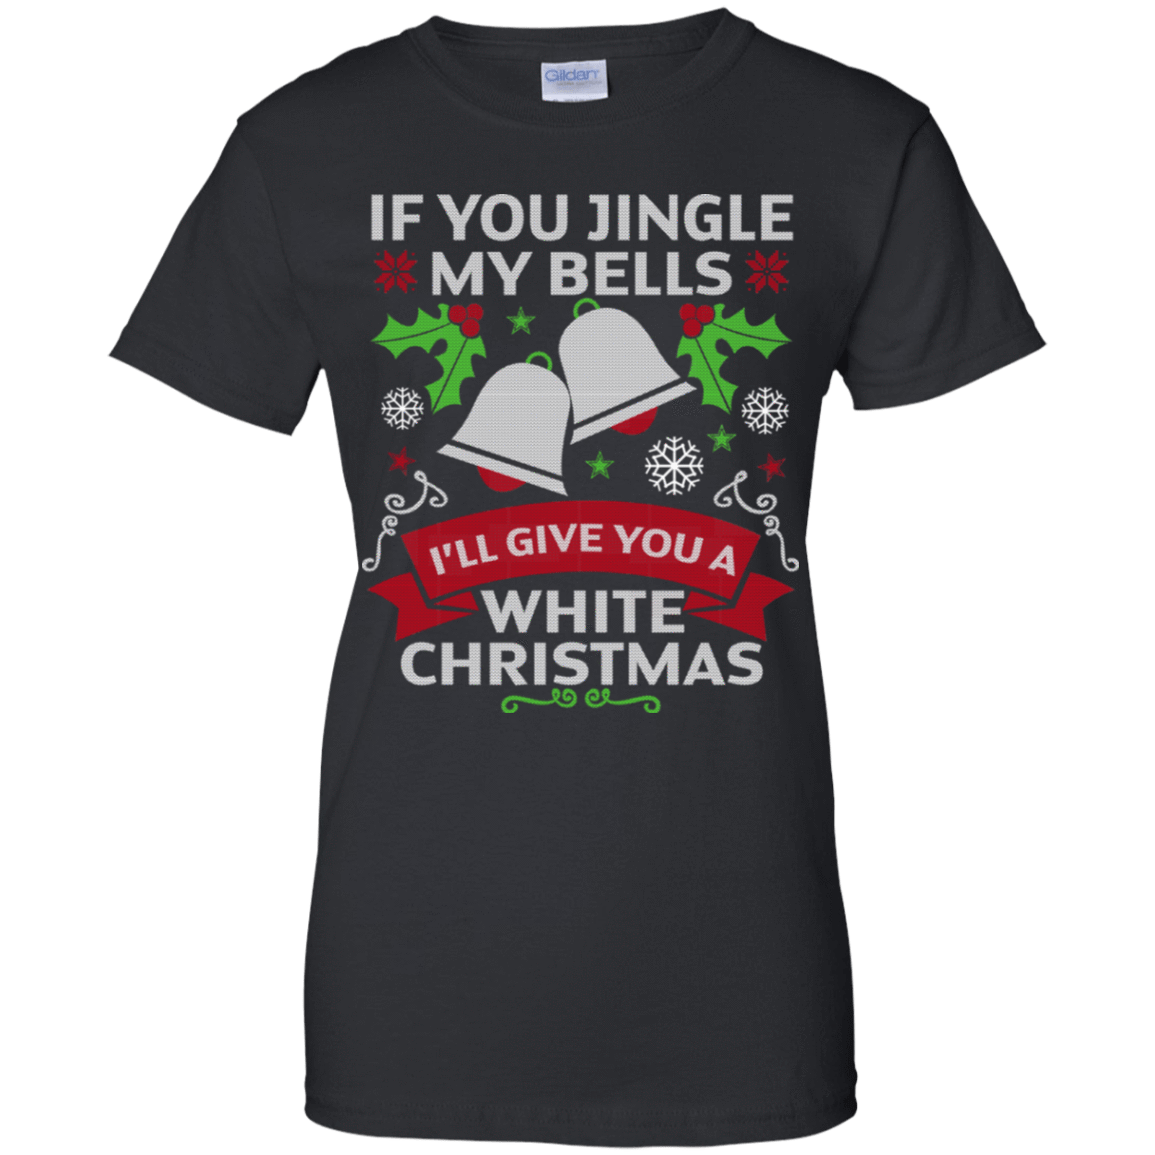 If You Jingle My Bells I'll Give You A White Christmas Sweater 939-9248-72772289-44695 - Tee Ript